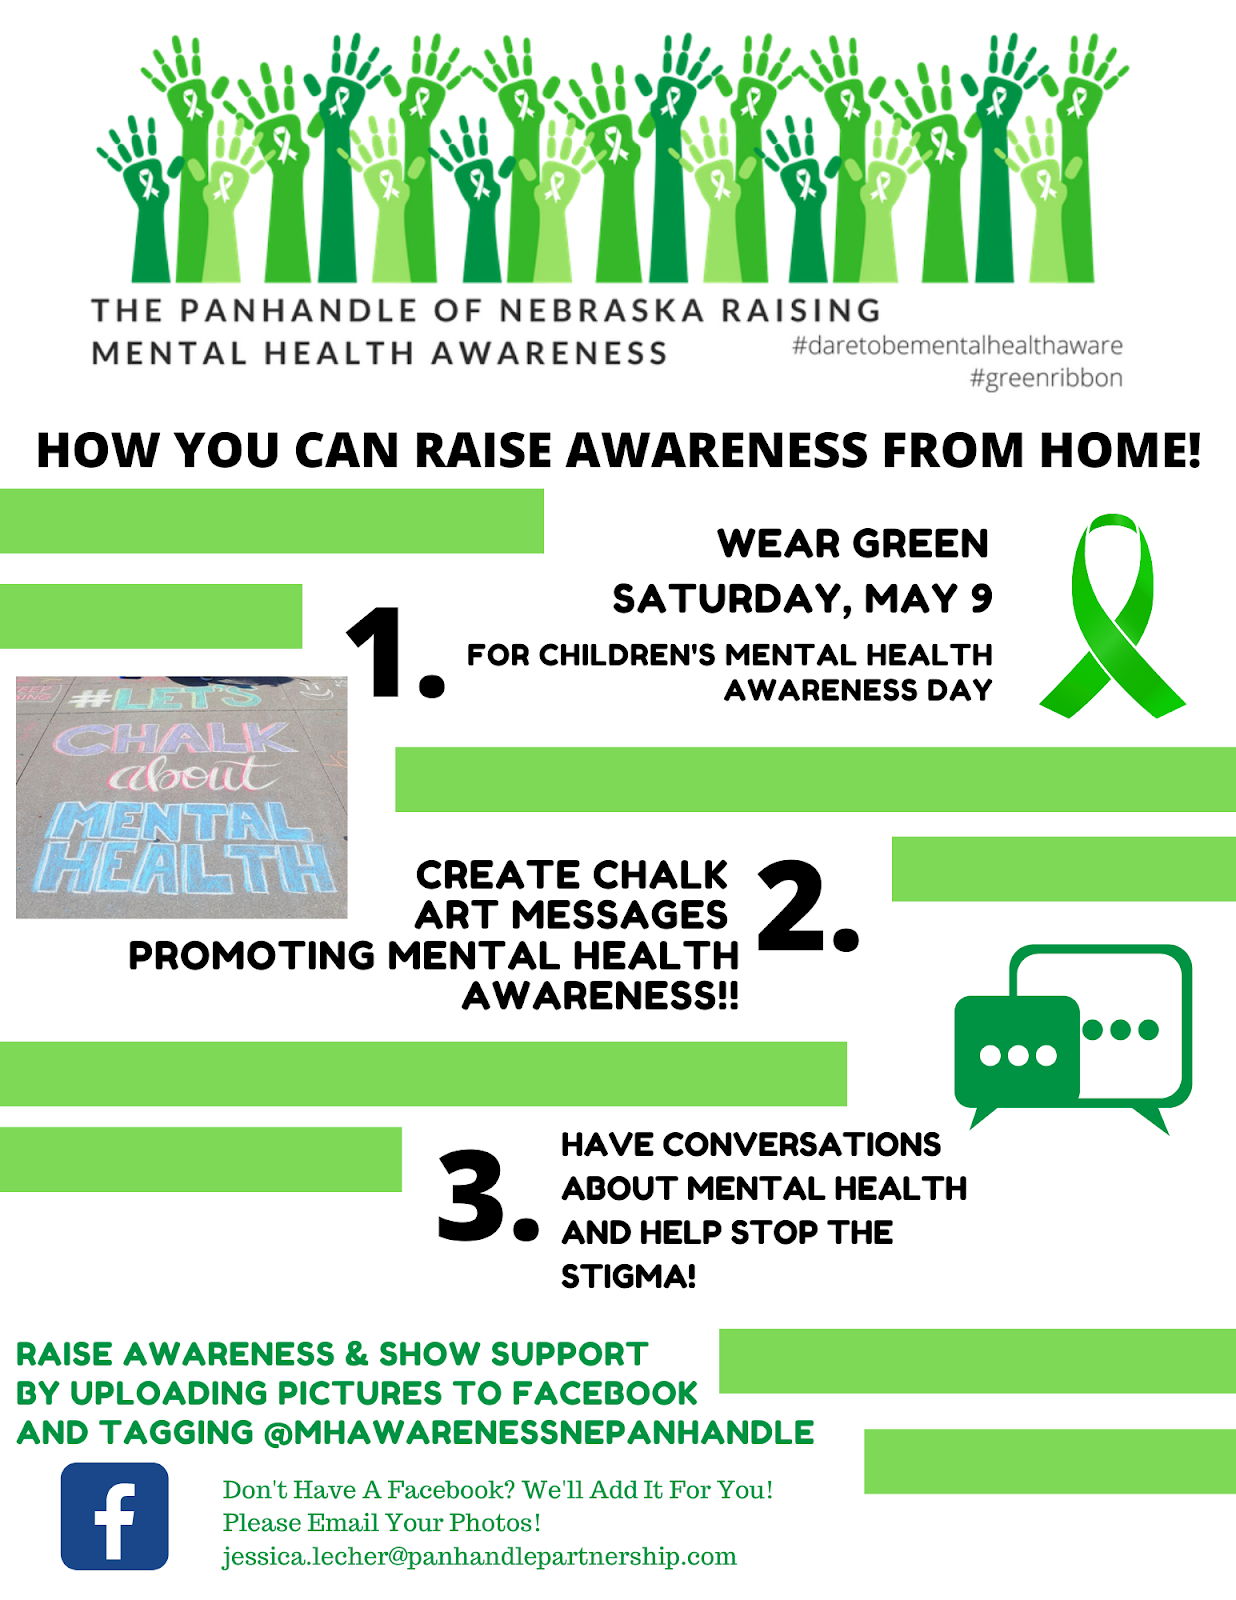 CHADRON MIDDLE SCHOOL: May is Mental Health Awareness Month